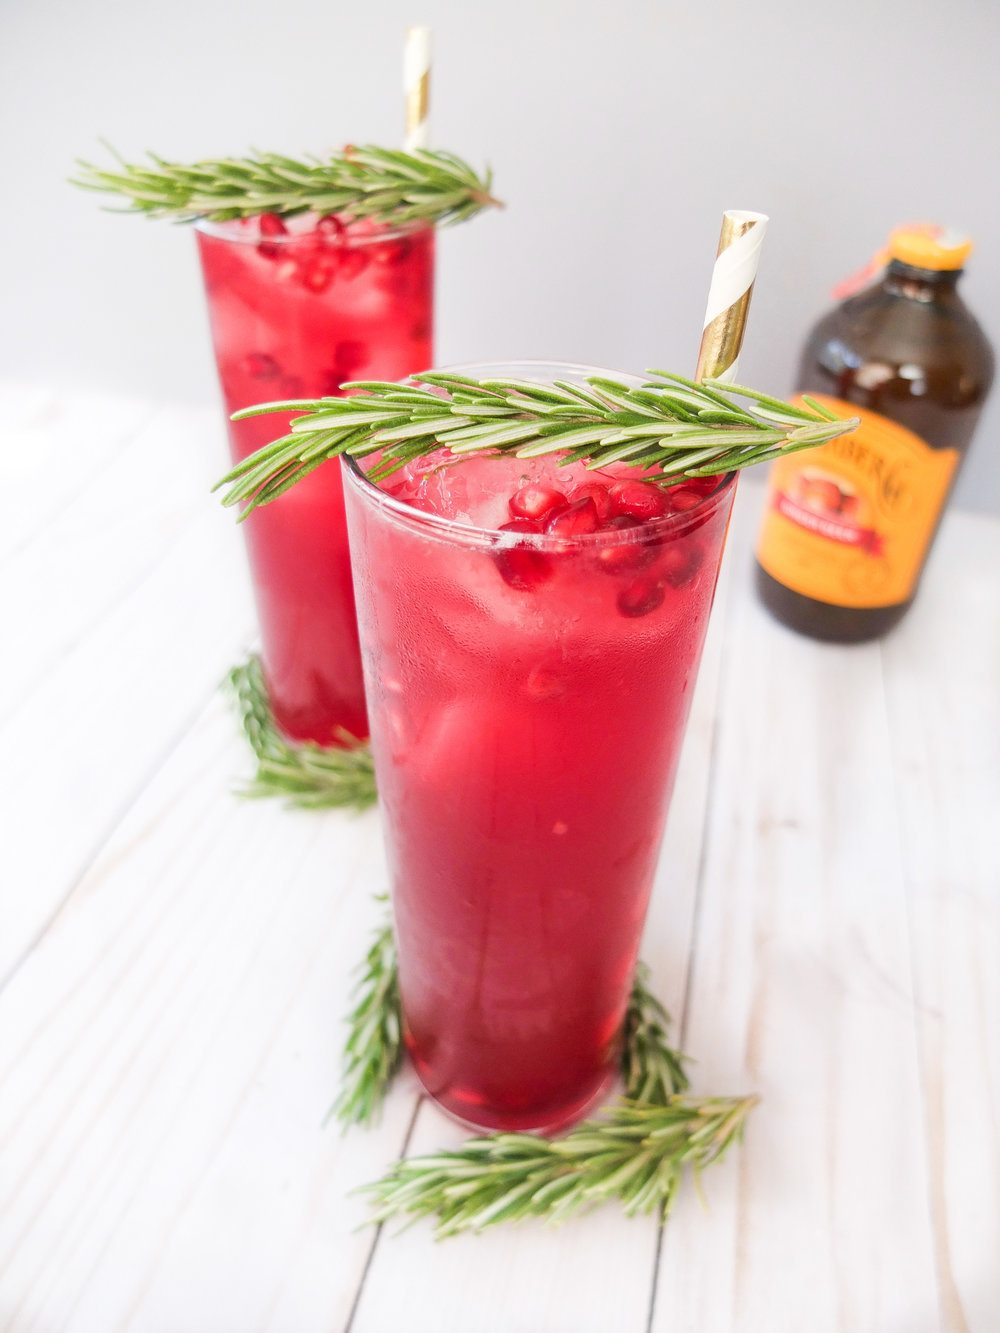 Easy Holiday cocktail similar to a holiday mule or buck. Perfect for Holiday entertaining or a Christmas Party recipe. A recipe for an easy Holiday cocktail that has Bundaberg Ginger Beer, white rum, pomegranate juice, muddled rosemary, and lemon juice. This Rudolph's Night Off is perfect for holiday entertaining or holiday drinking. // www.ElleTalk.com #spons #Bundaberg #GingerBeer #brewedbetter #holidaypartytreat #holidayrecipe #cocktailrecipe #drinkrecipe